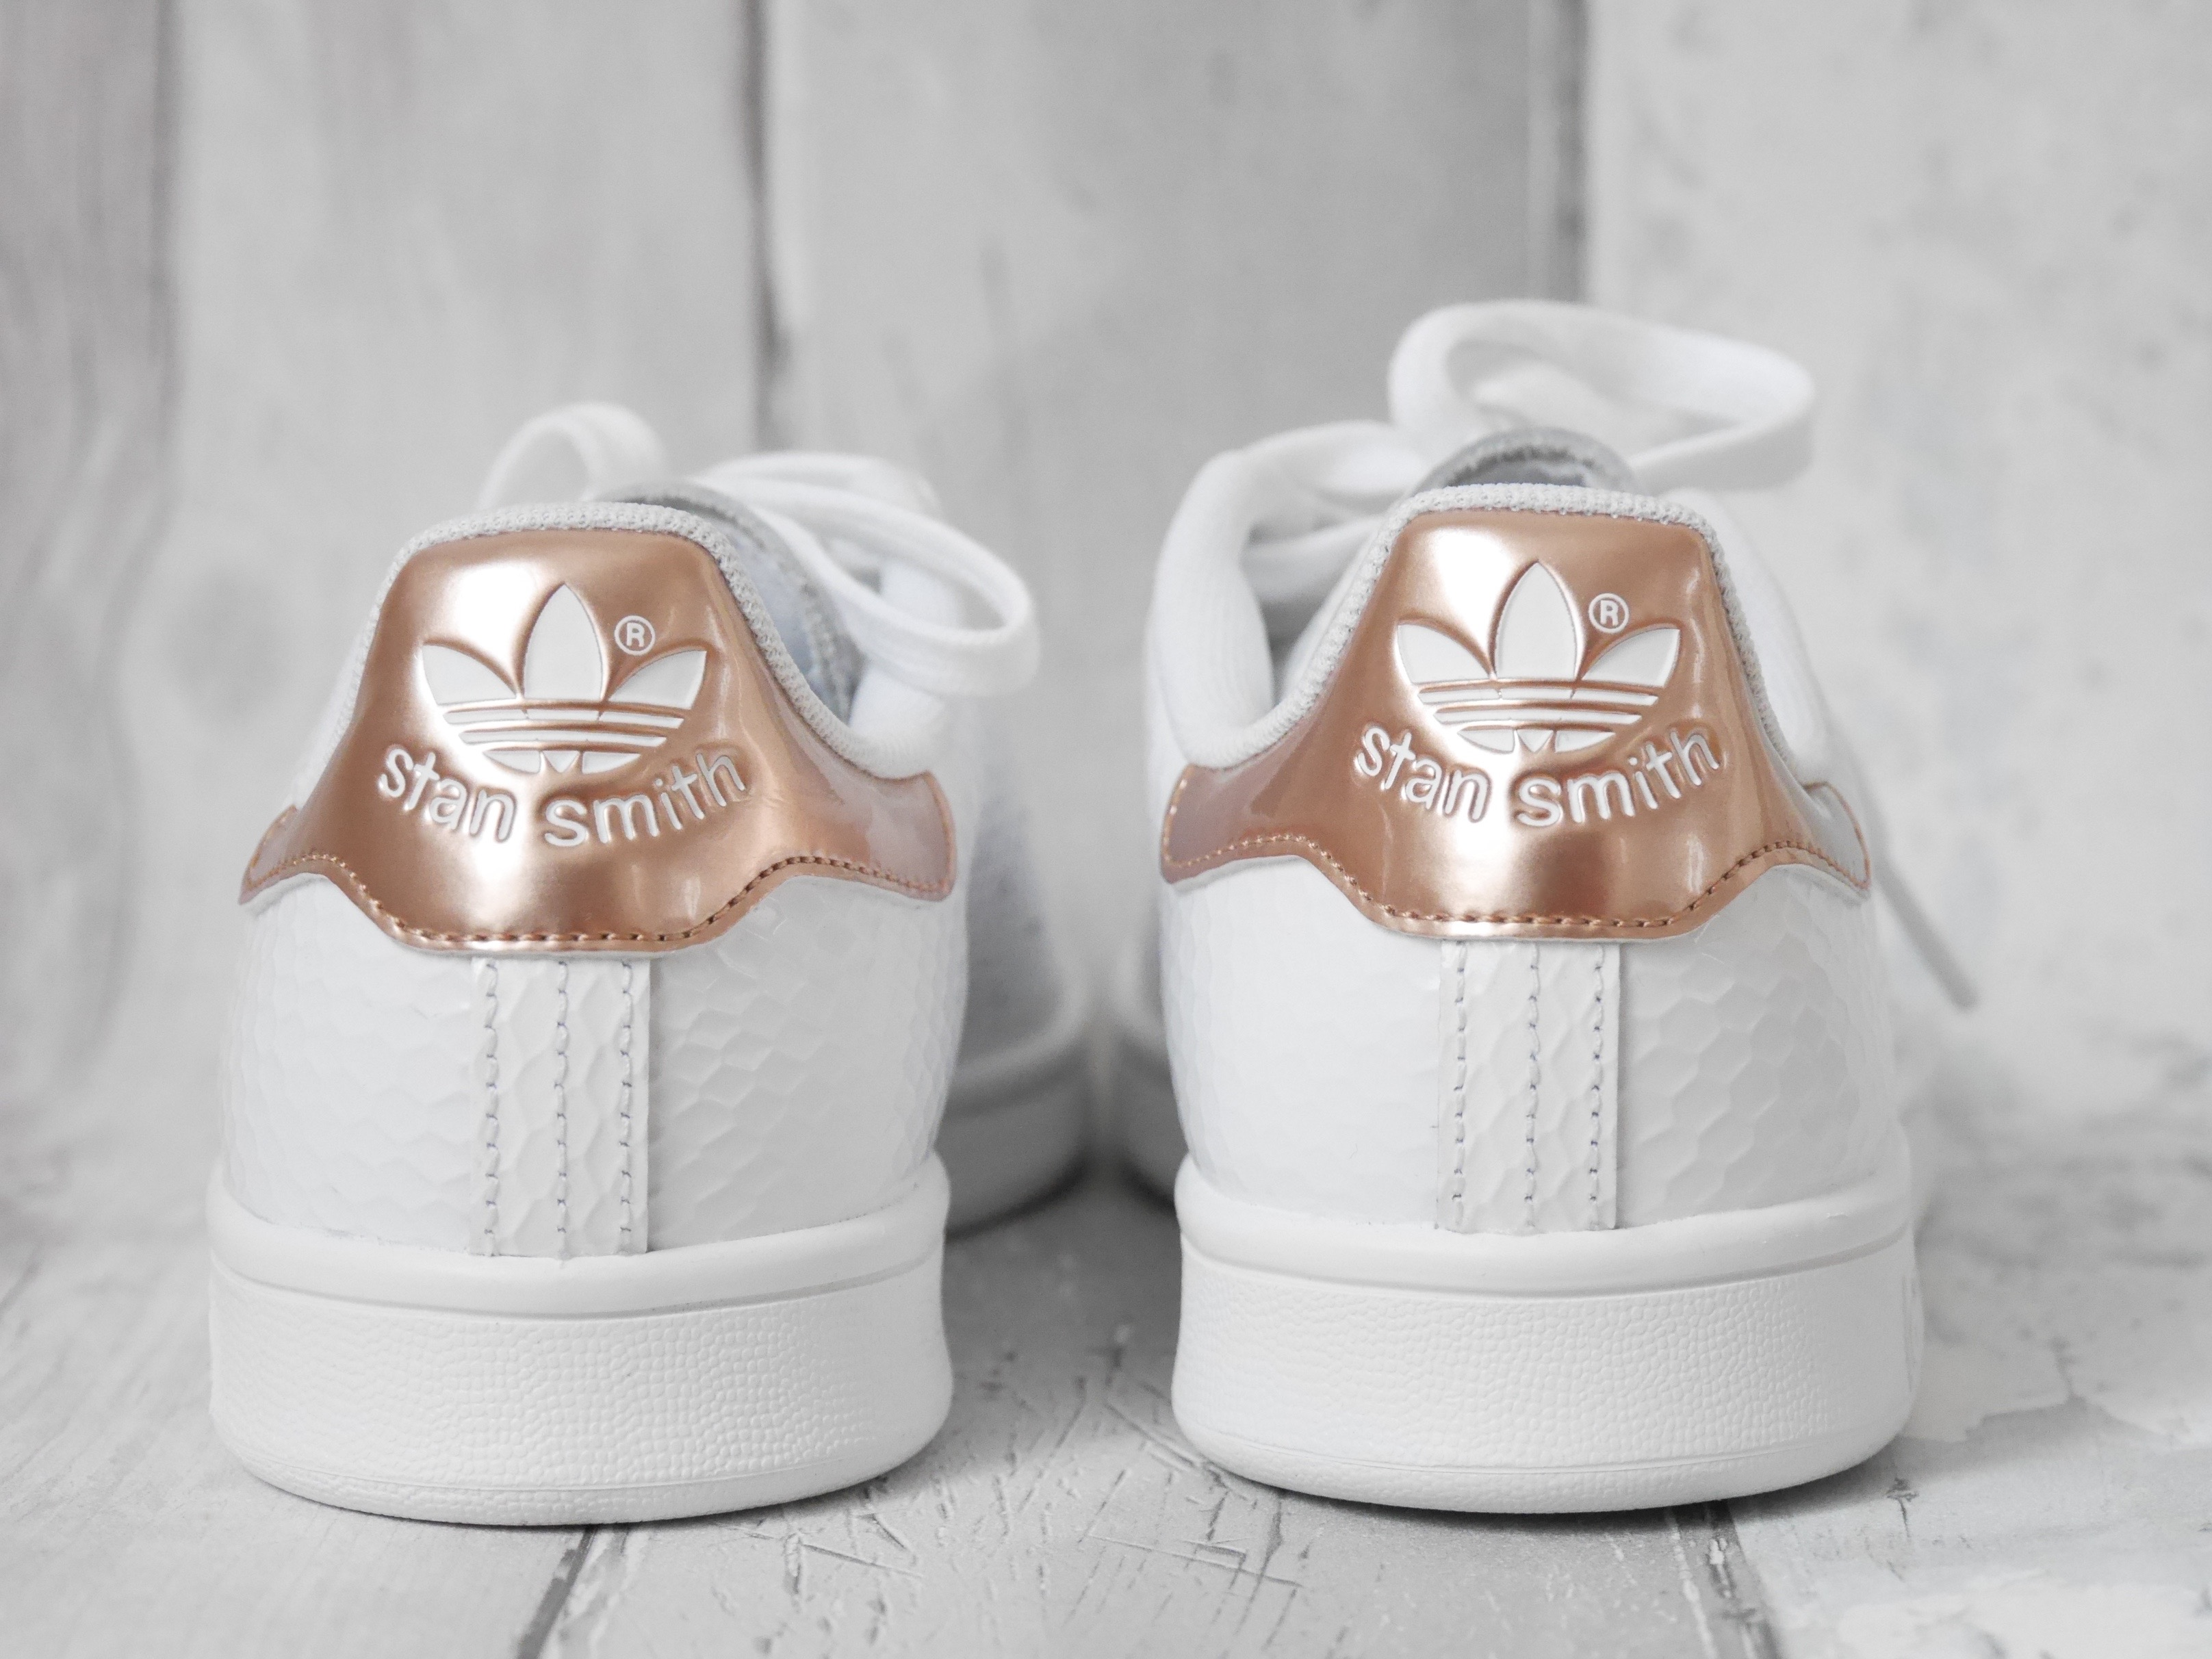 Stan smith femme gloss rose gold